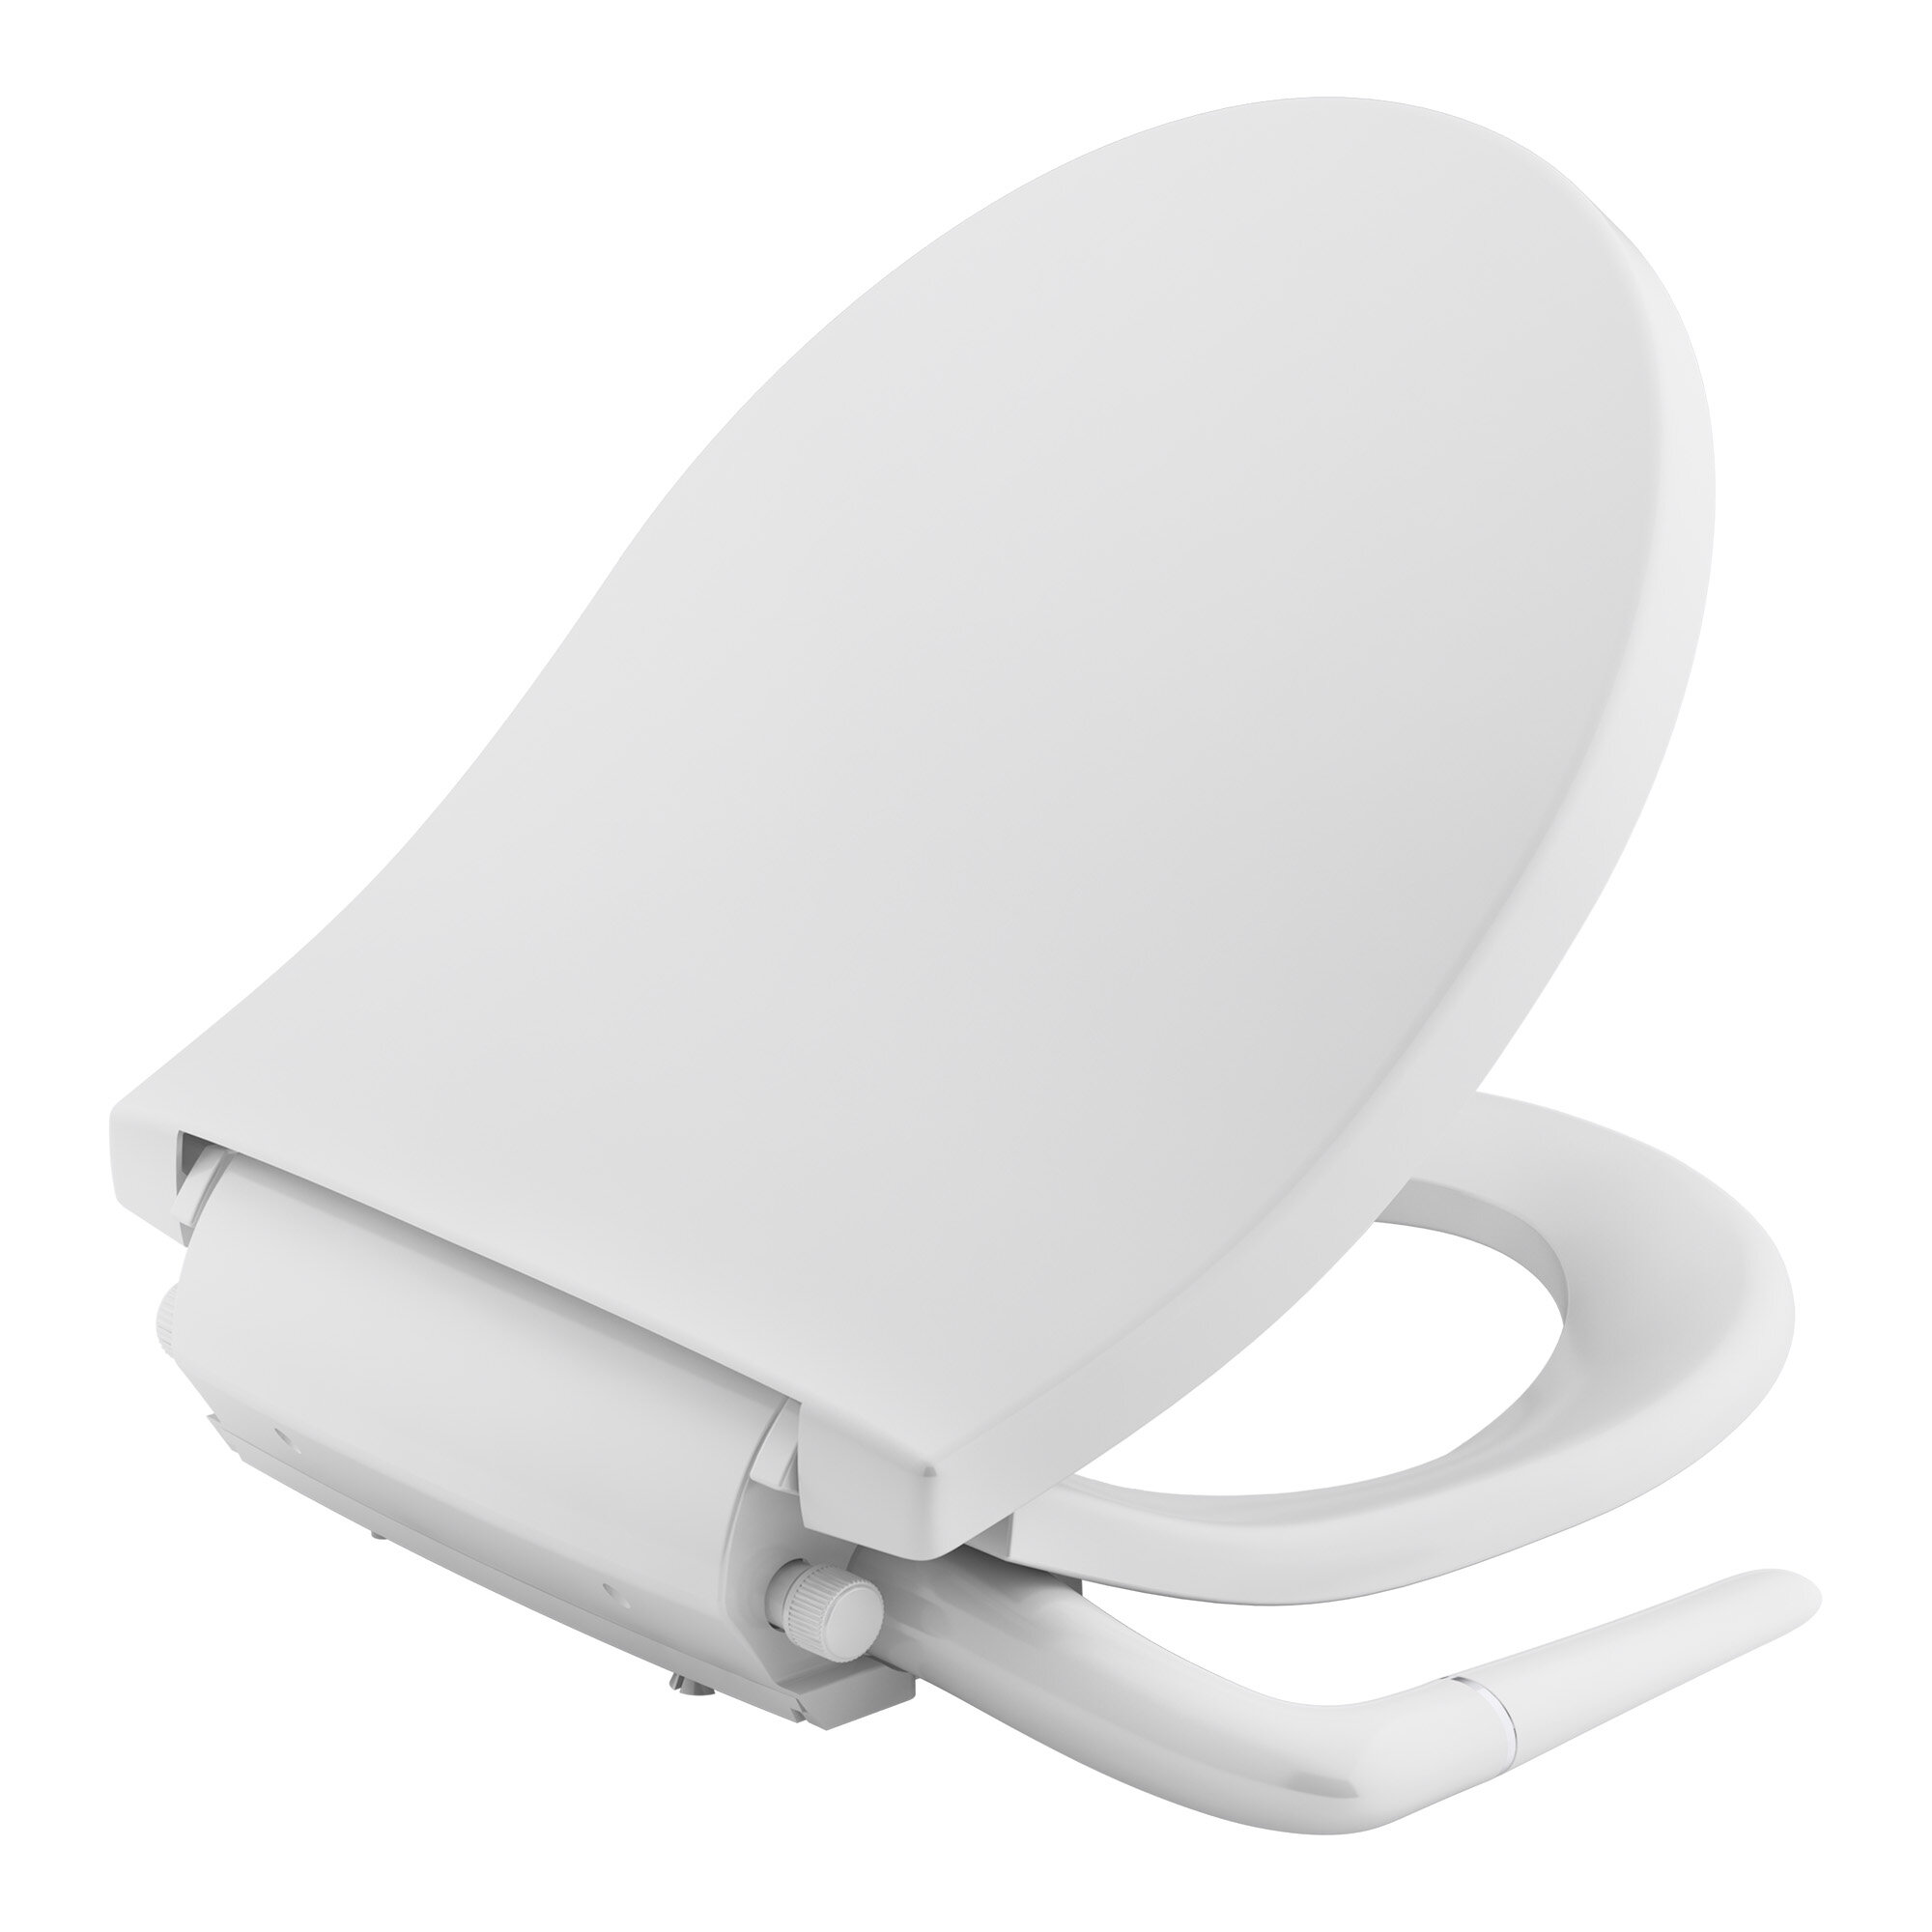 Outstanding Puretide Manual Cleansing Round Toilet Seat Bidet Pabps2019 Chair Design Images Pabps2019Com